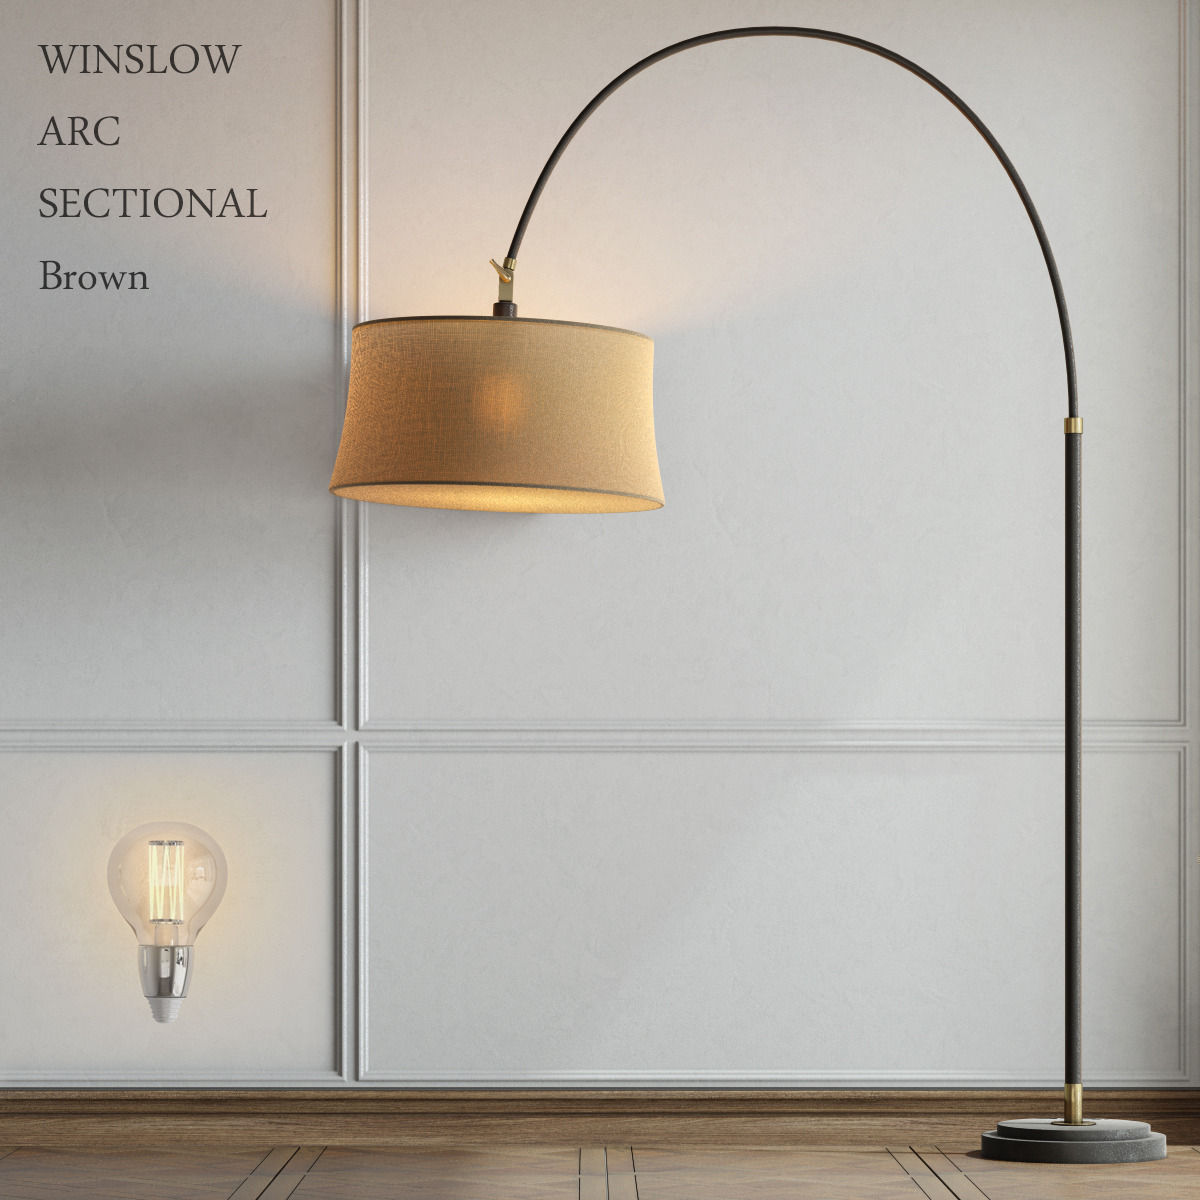 Pottery barn winslow arc sectional floor lamp 3d model max obj 3ds pottery barn winslow arc sectional floor lamp 3d model max obj 3ds fbx mtl aloadofball Gallery